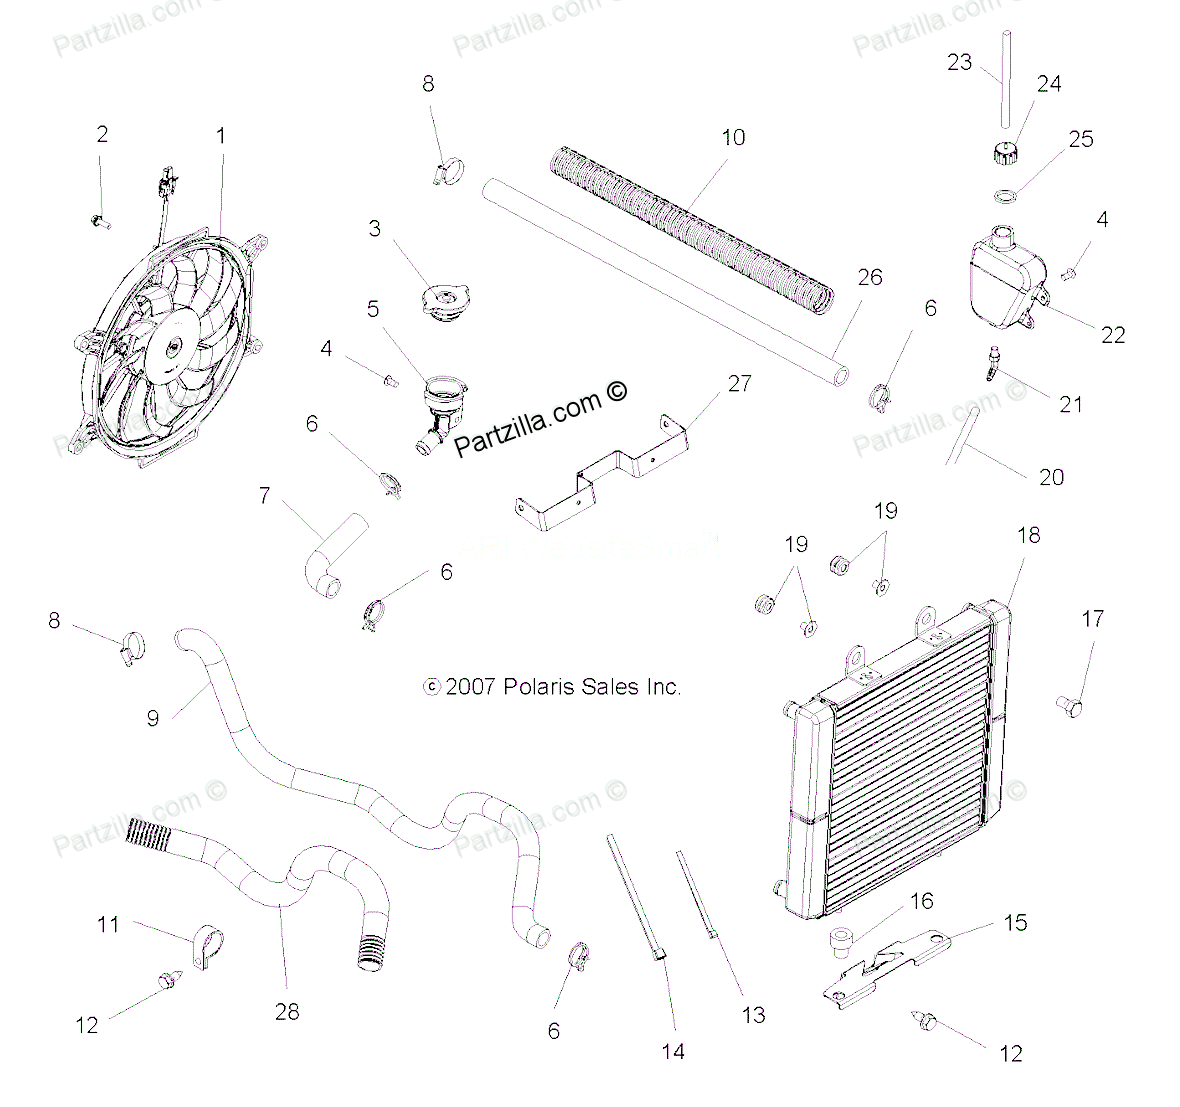 hight resolution of 2009 polaris sportsman 500 ho fan not coming on 70975f6139f876d073a783e9f8d38e0179831223 png